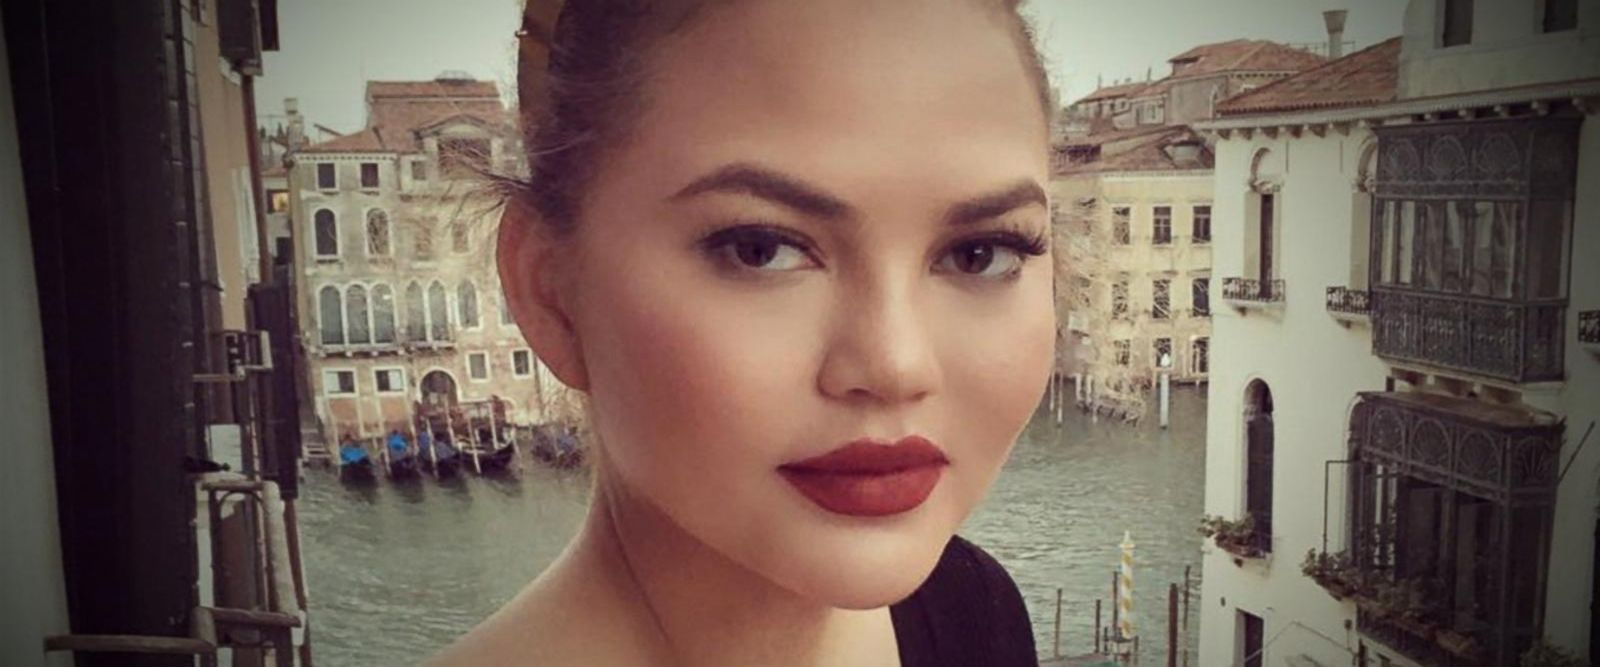 VIDEO: 'I need to fix myself:' Chrissy Teigen speaks out about alcohol